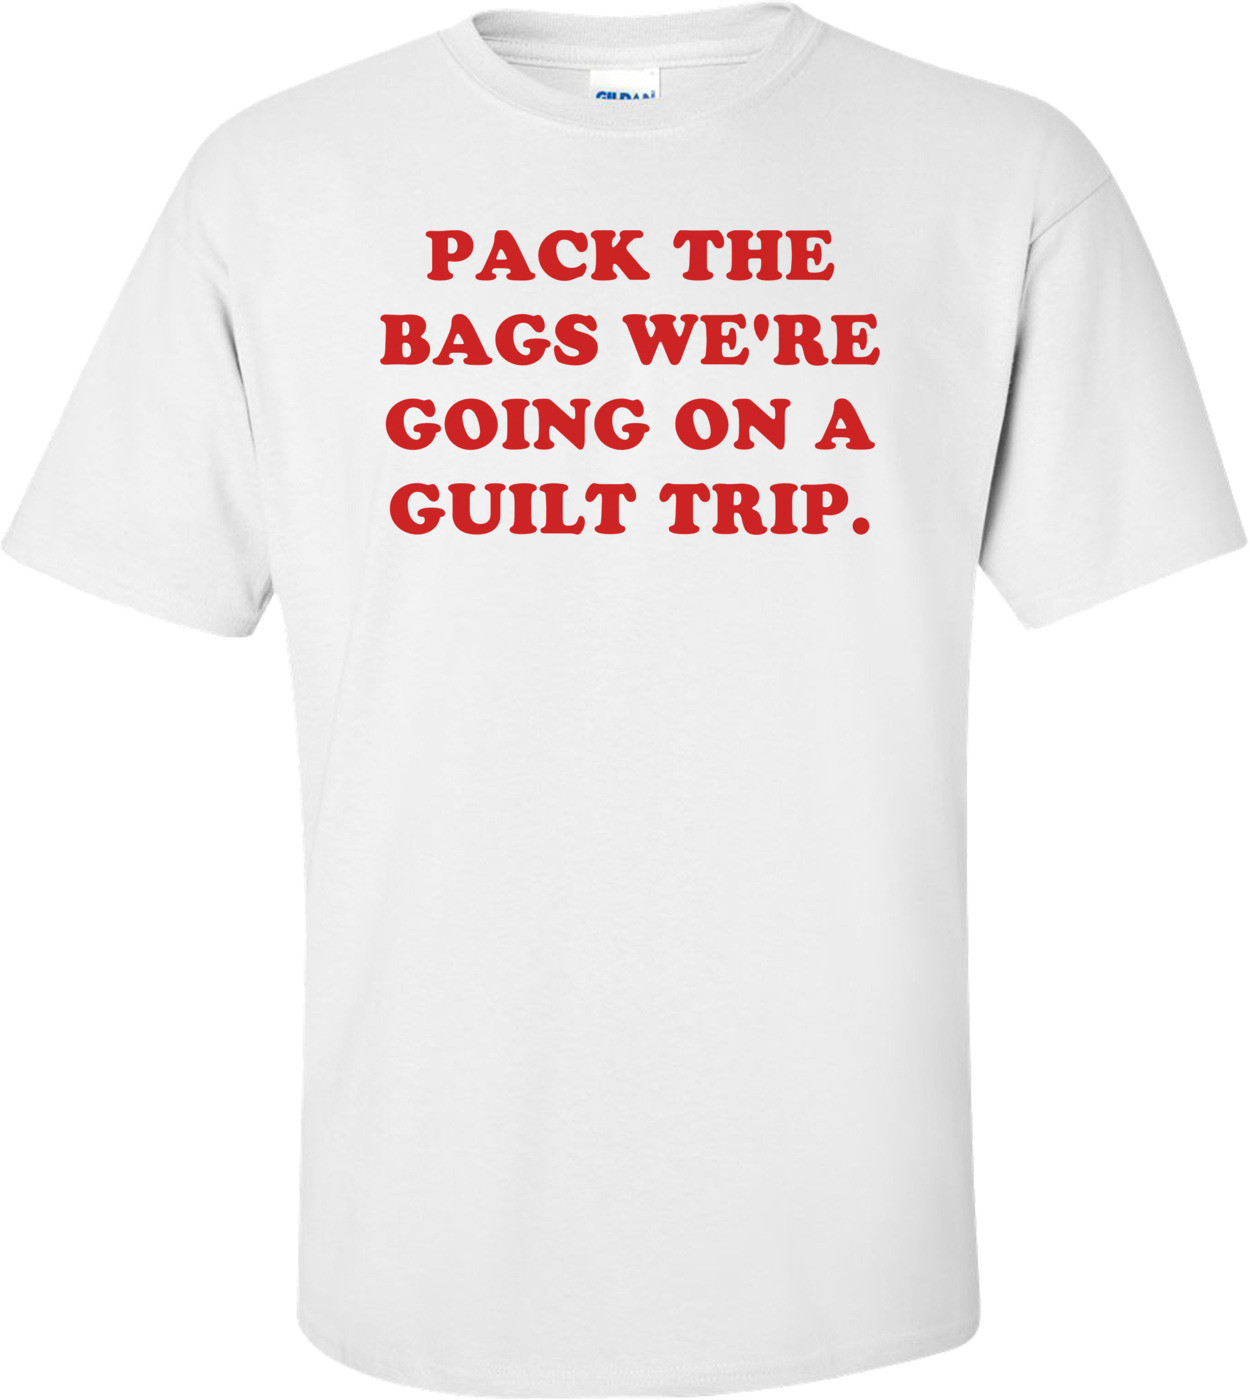 PACK THE BAGS WE'RE GOING ON A GUILT TRIP. Shirt